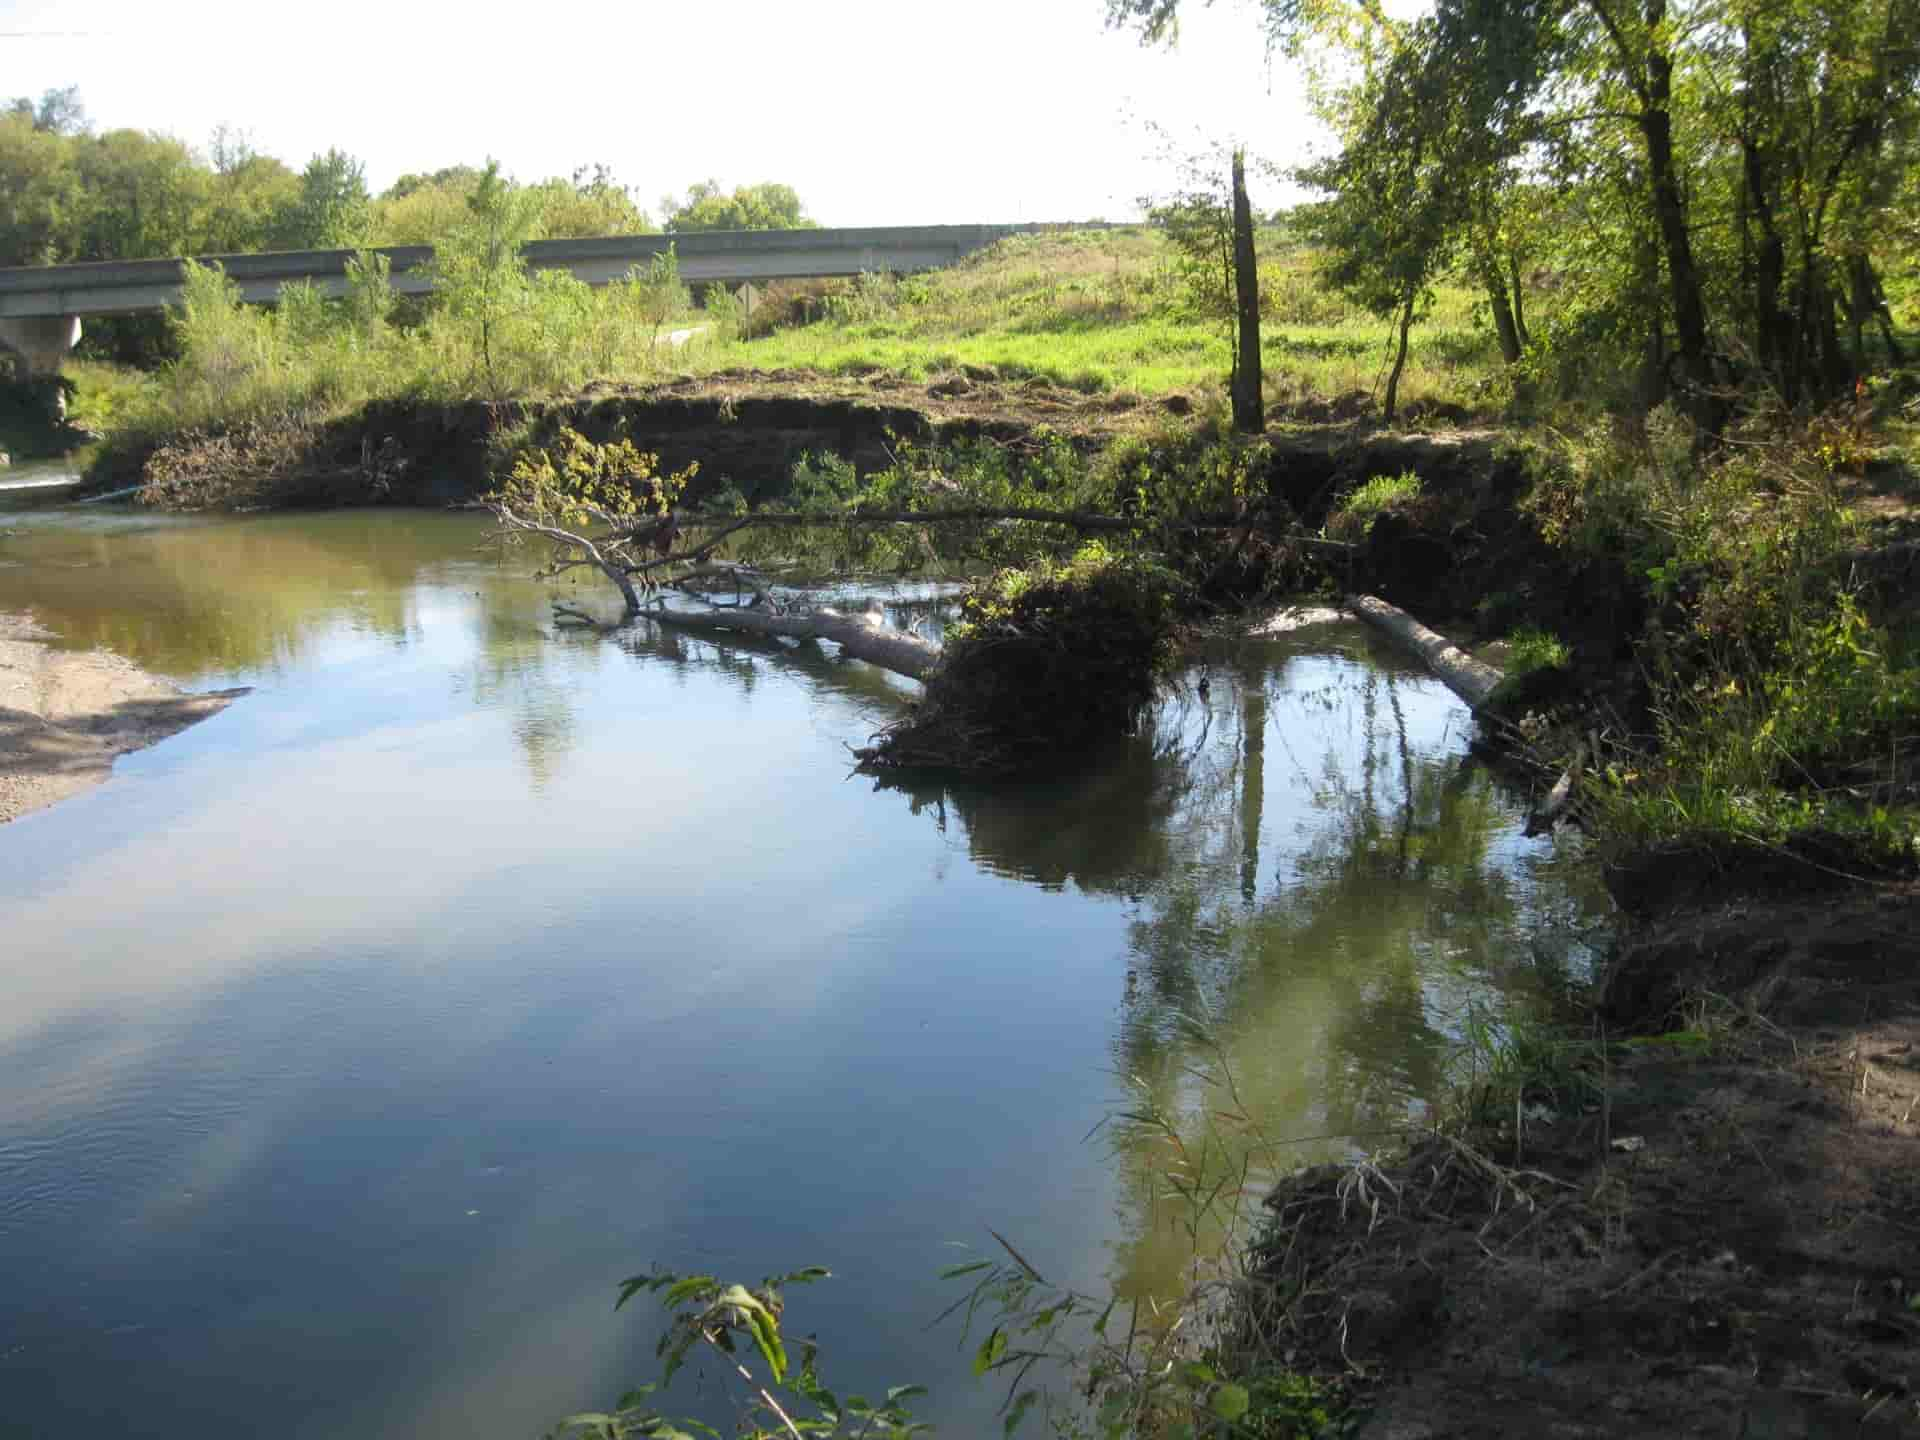 Same waterway but in the spring time with broken trees mostly cleared